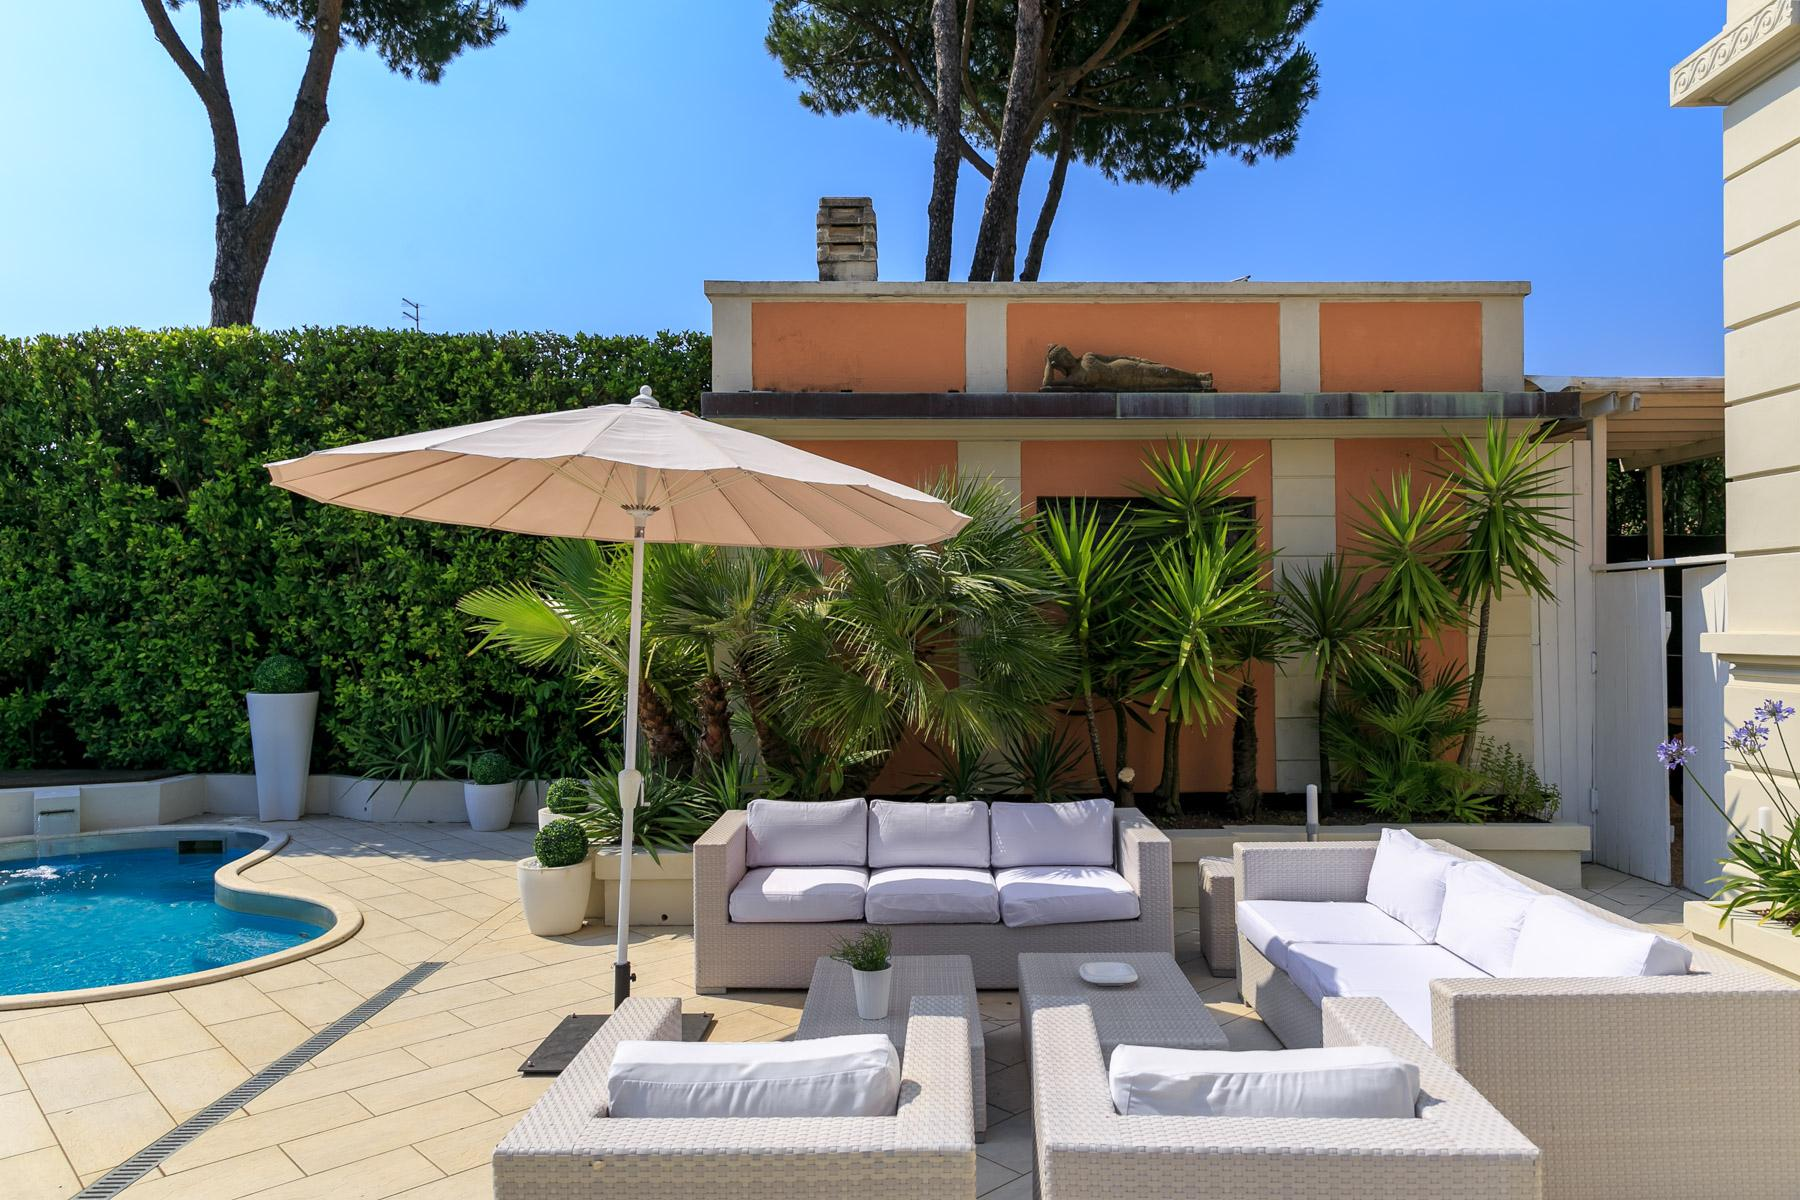 Seafront Villa with tower in Forte dei Marmi - 29